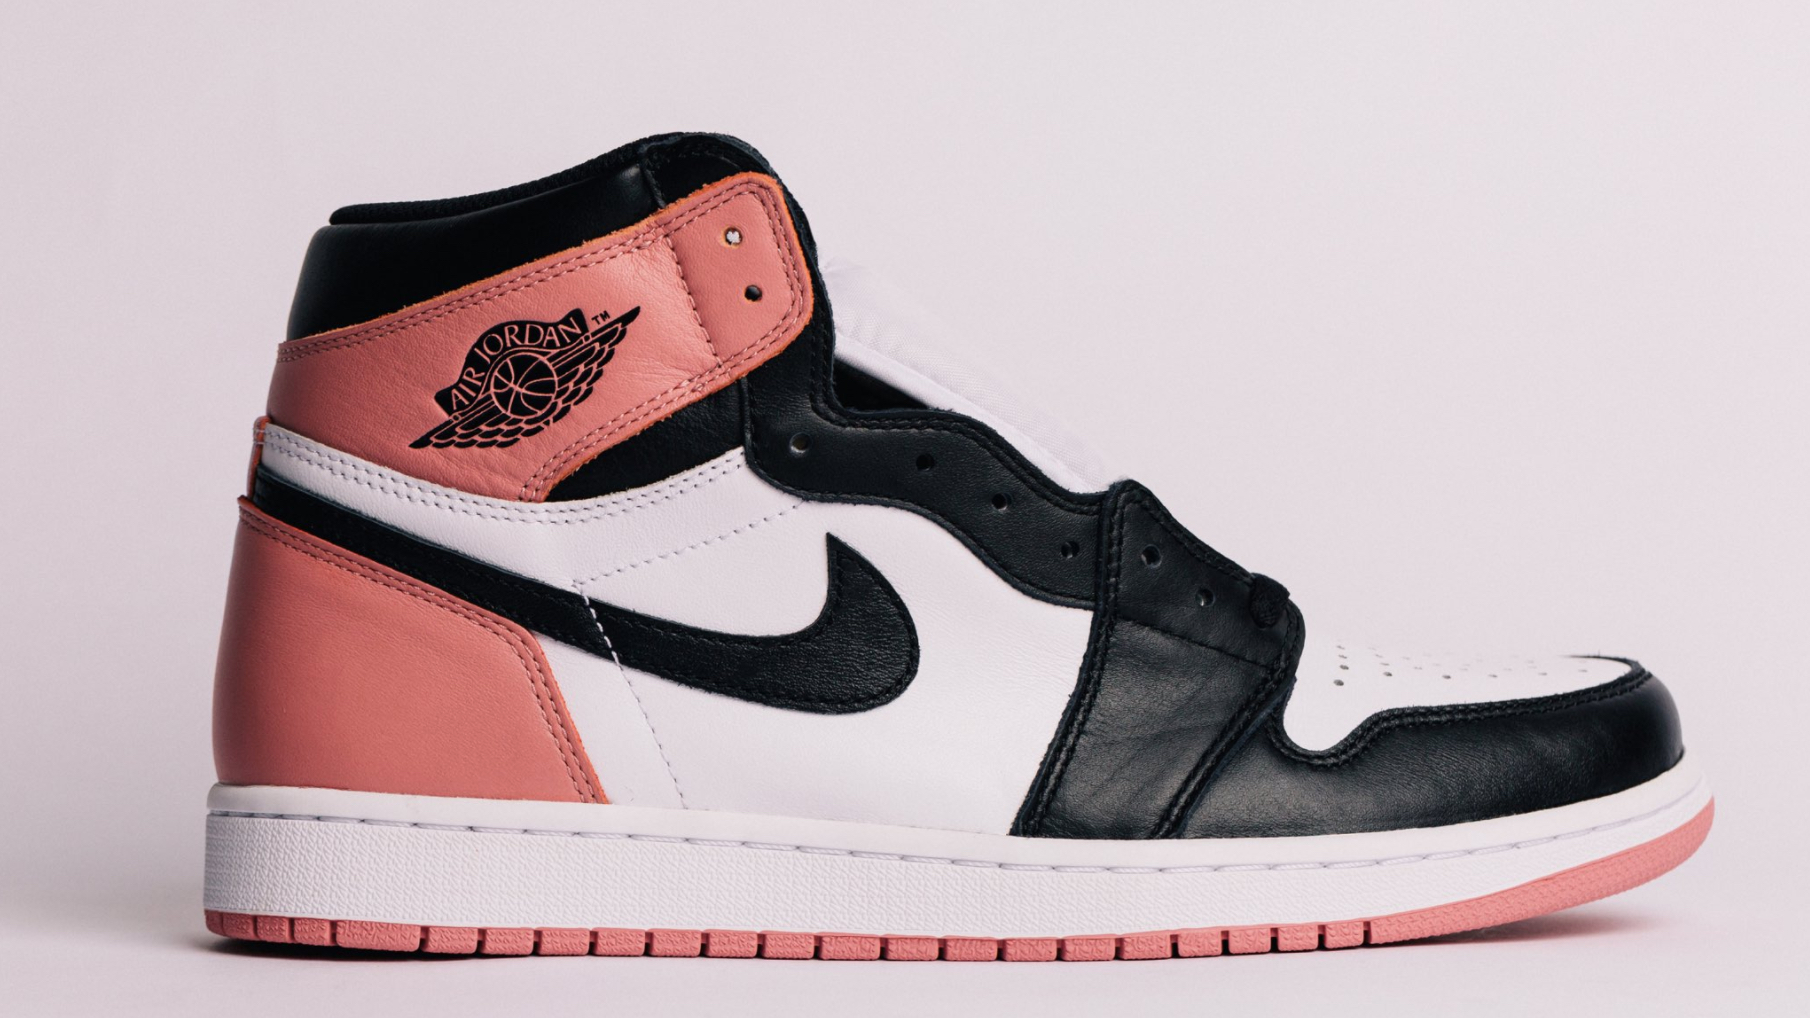 a890056f6c2d47 jordan brand Archives - Page 26 of 66 - WearTesters